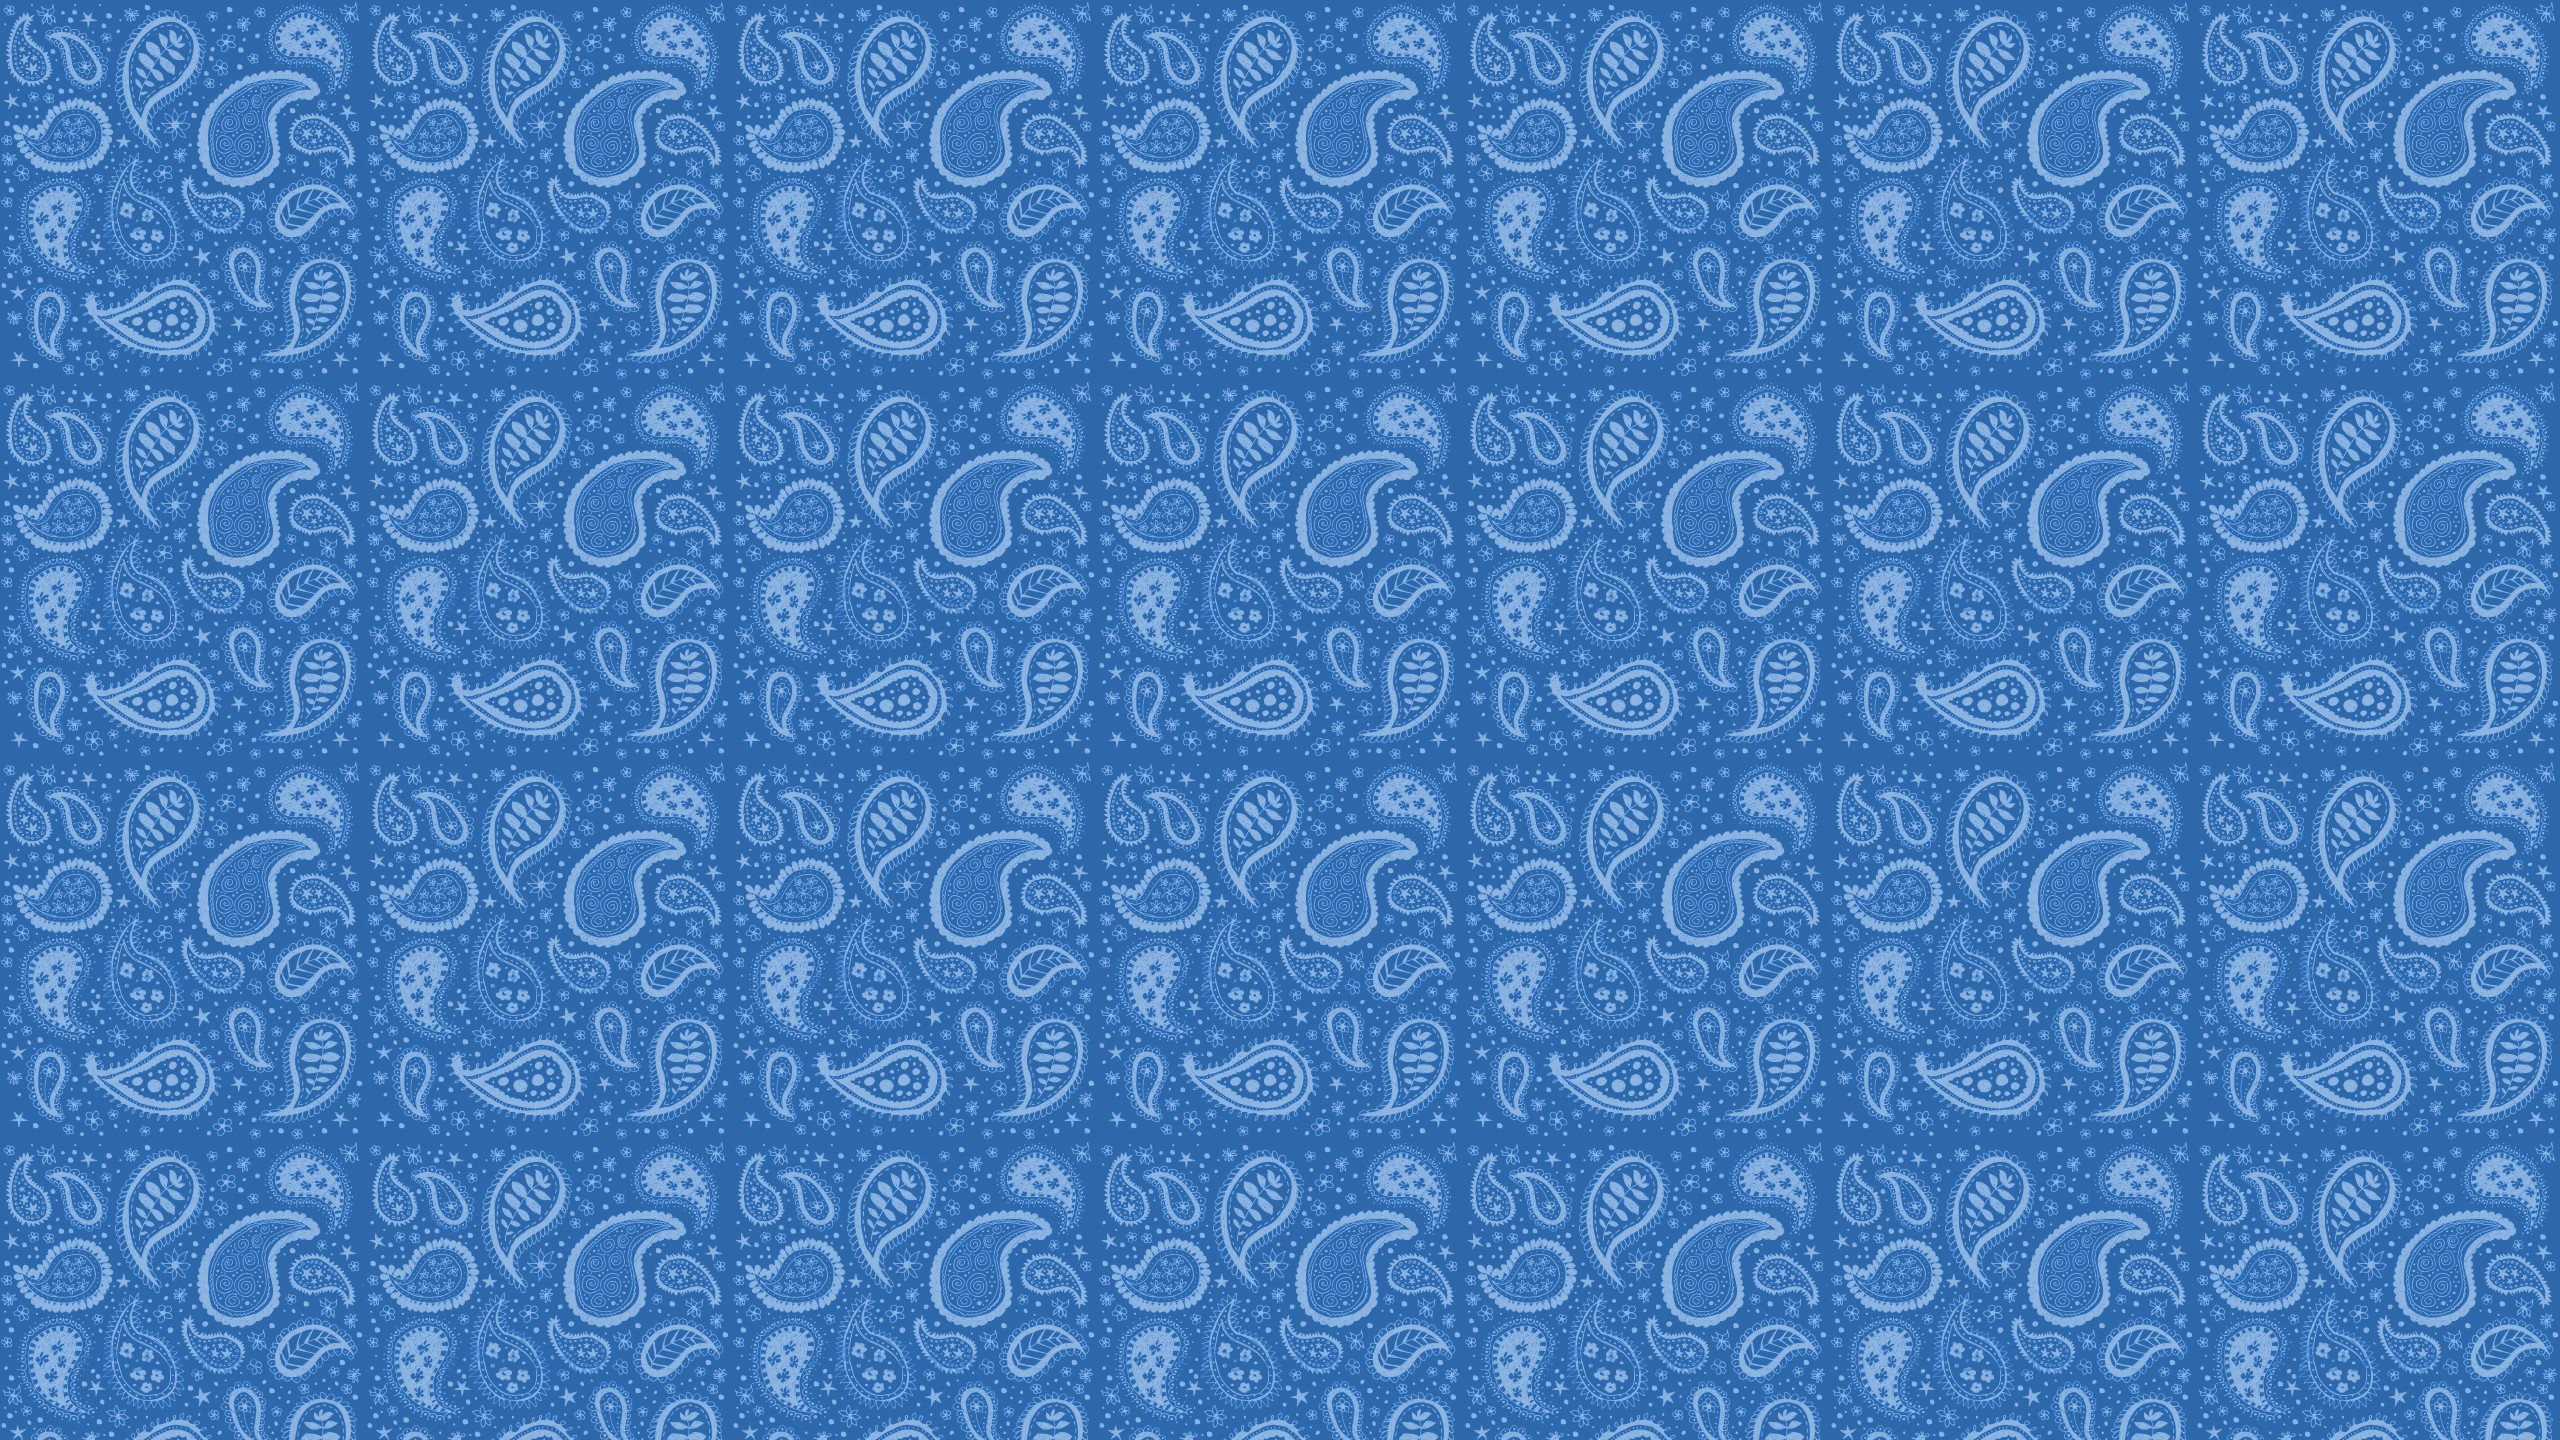 Paisley background ·â' Download free cool full HD backgrounds for